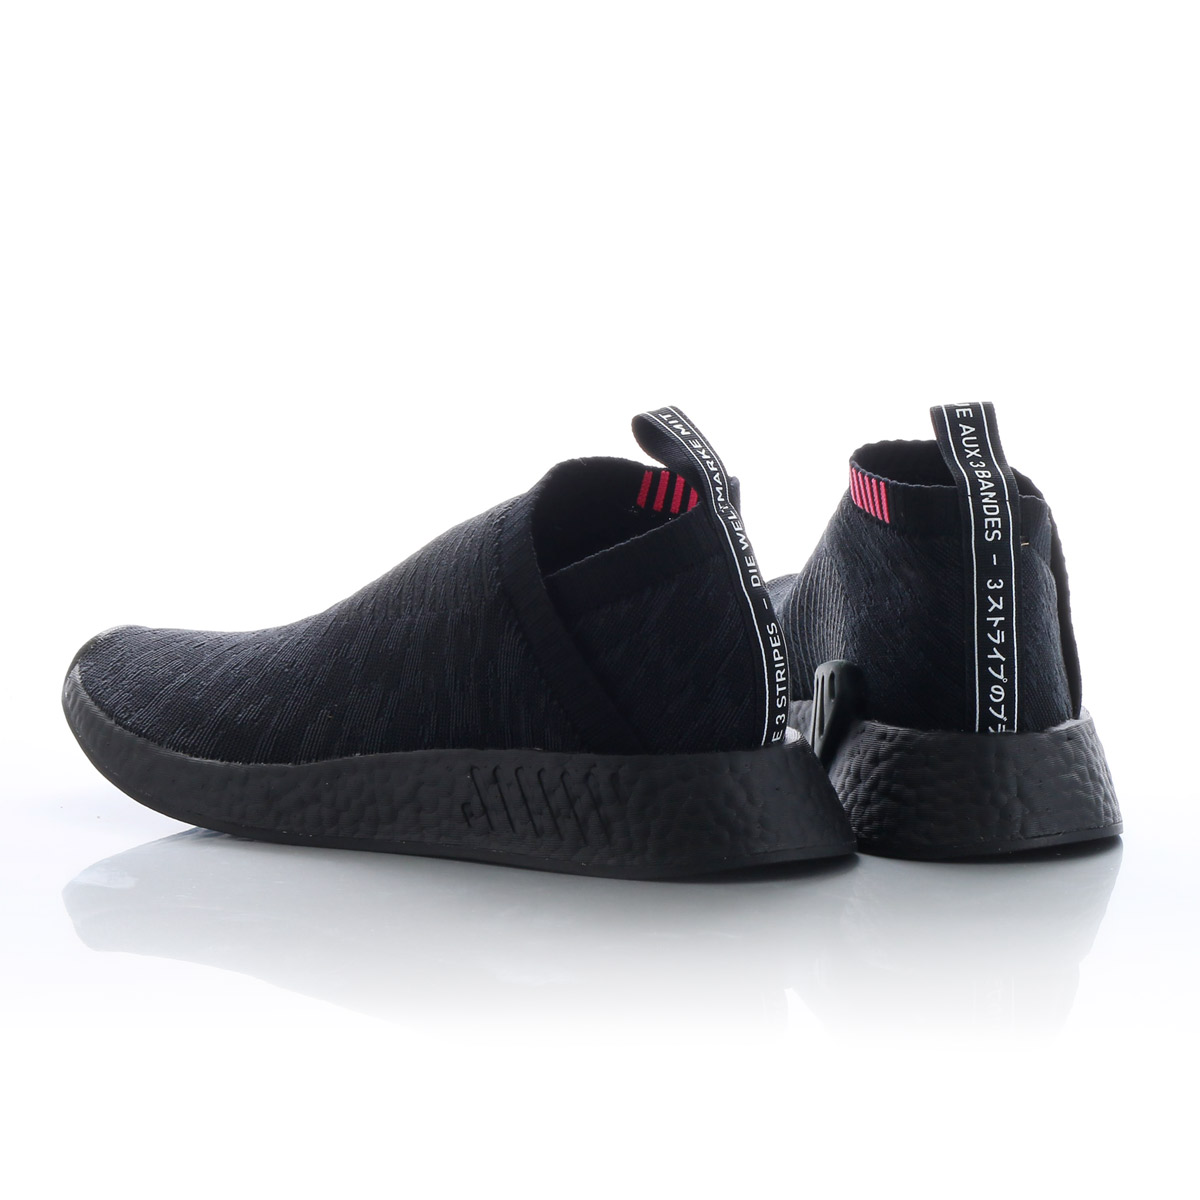 adidas Originals NMD_CS2 PK(アディダス オリジナルス エヌエムディー CS2 PK)(Core Black/Carbon/Shock Pink)18SS-I